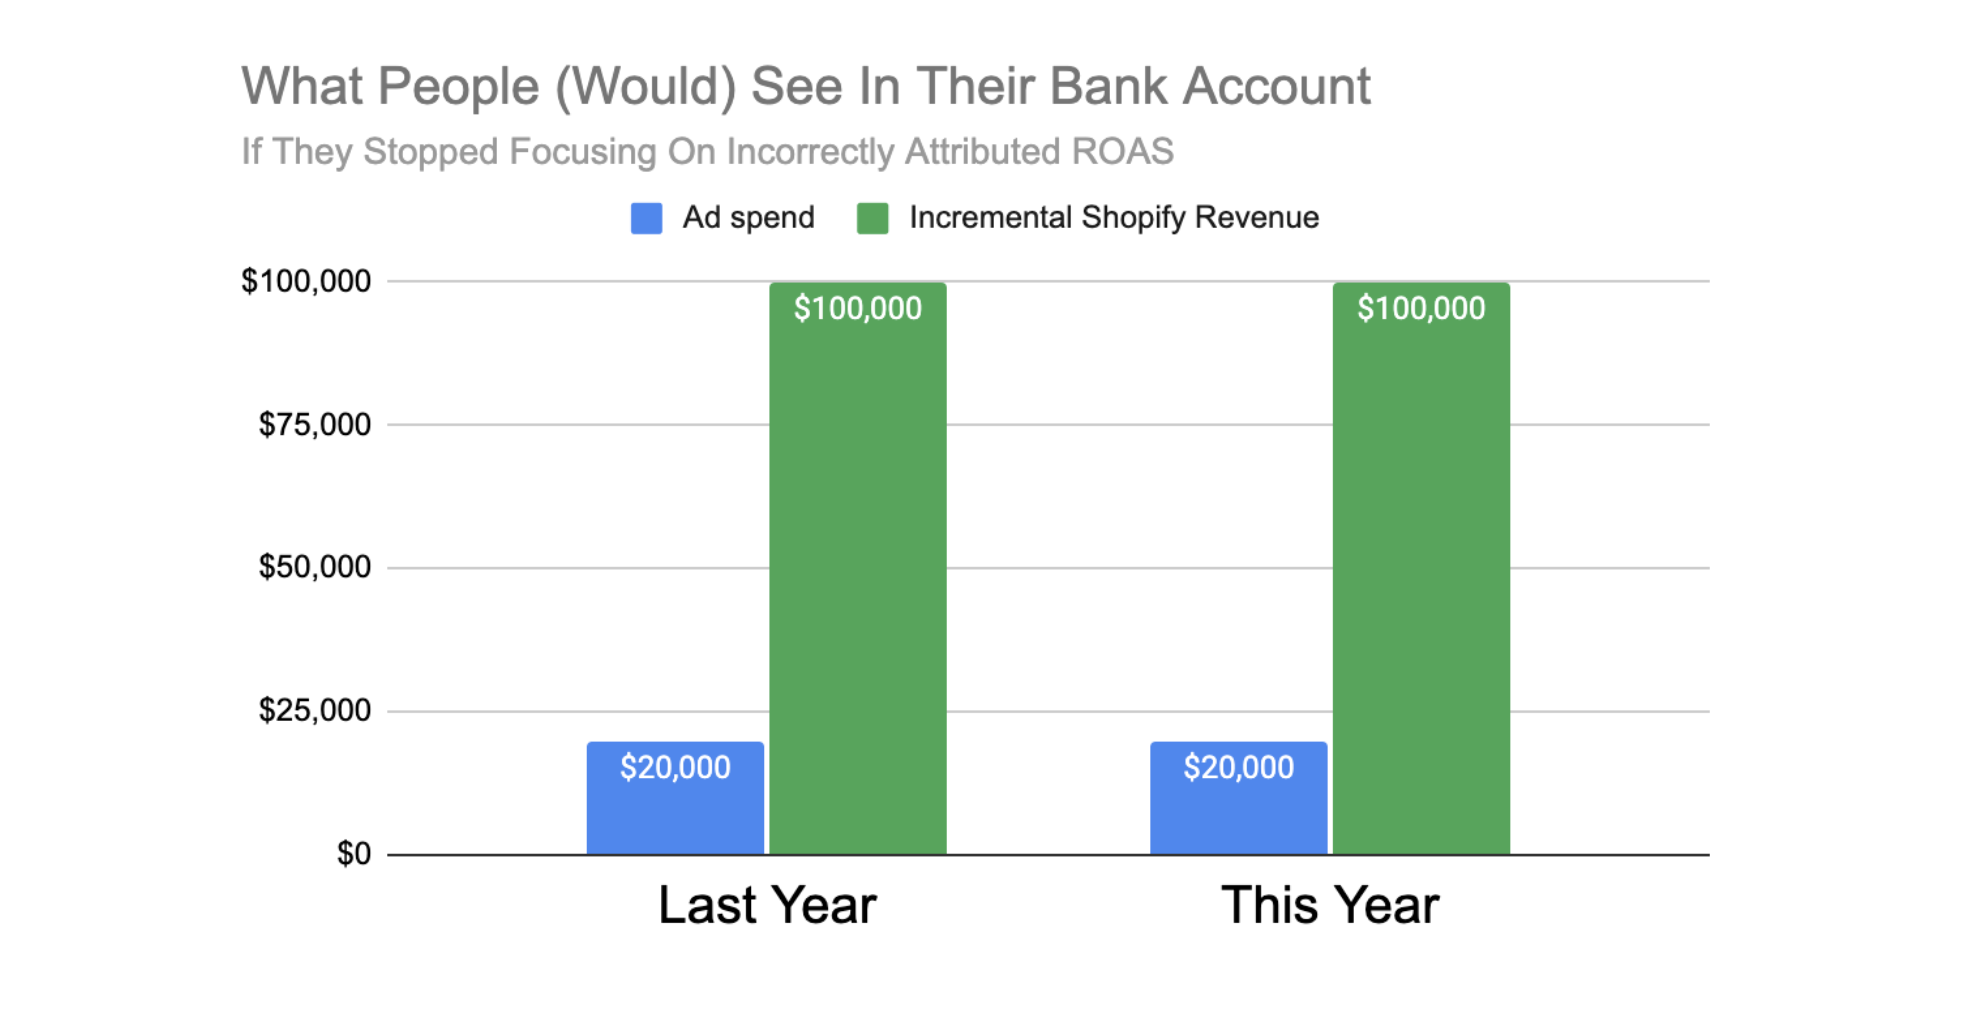 What people would see in their bank account for advertising on Facebook